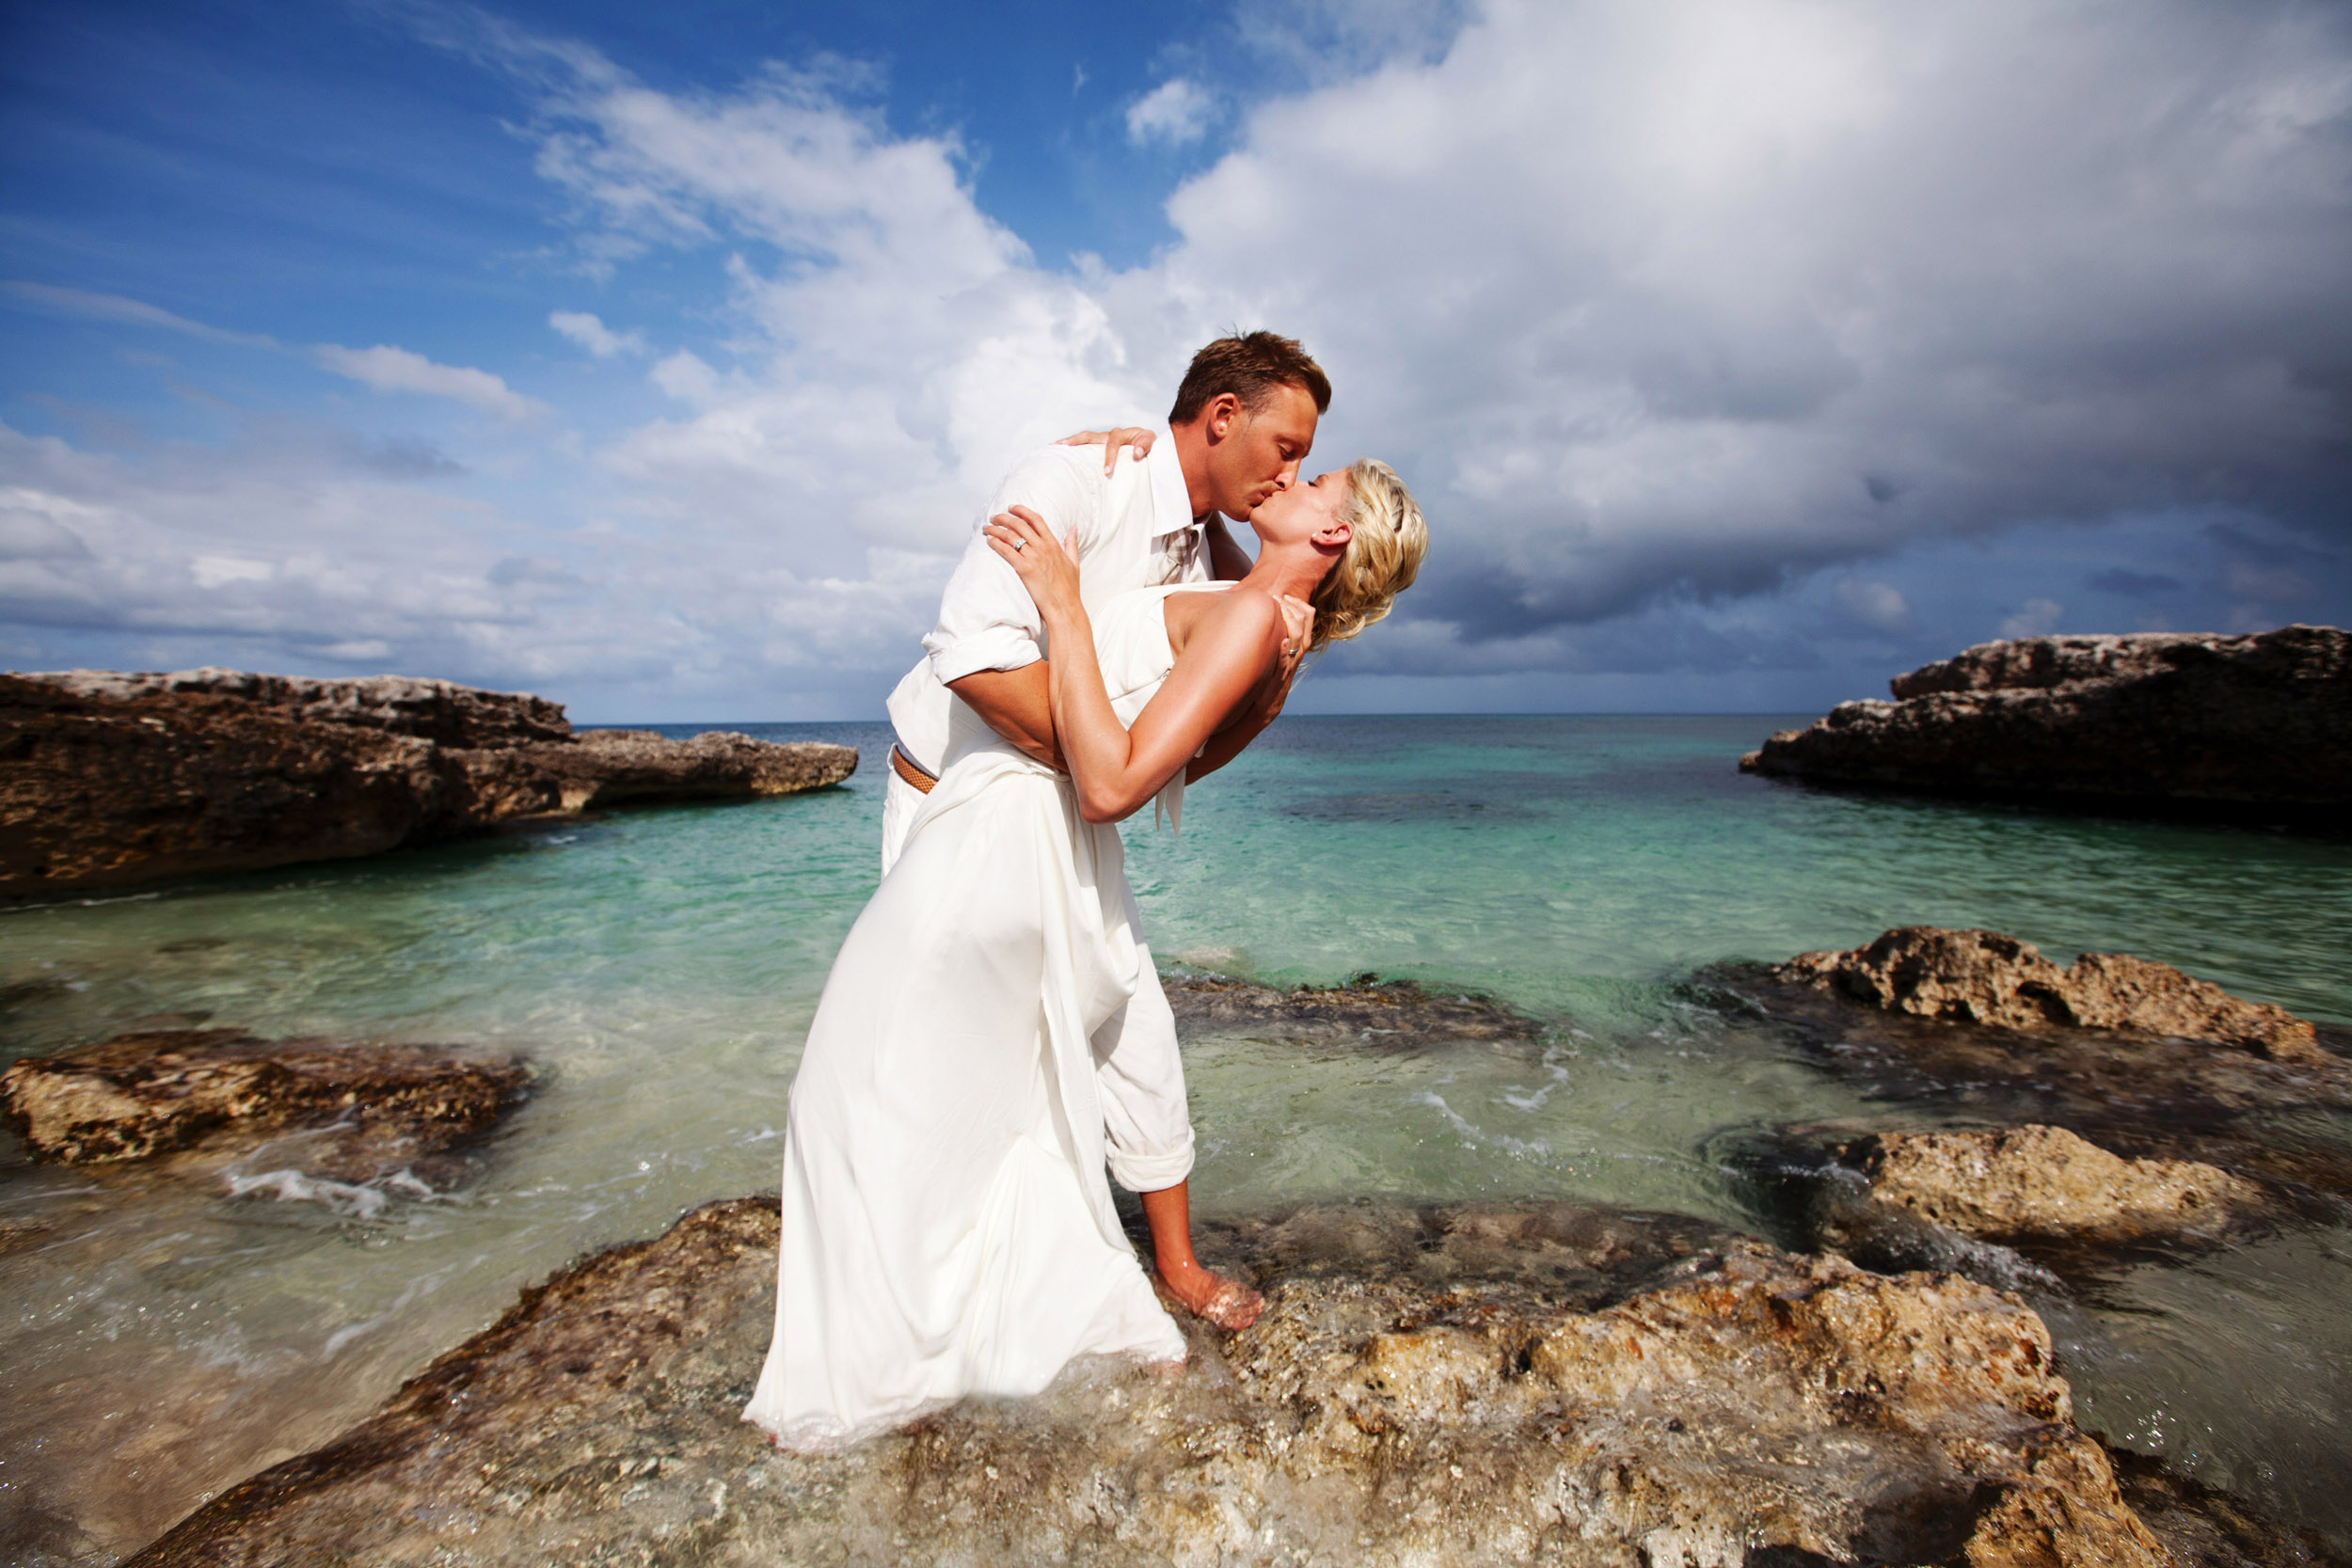 weddings-aruba-20.jpg